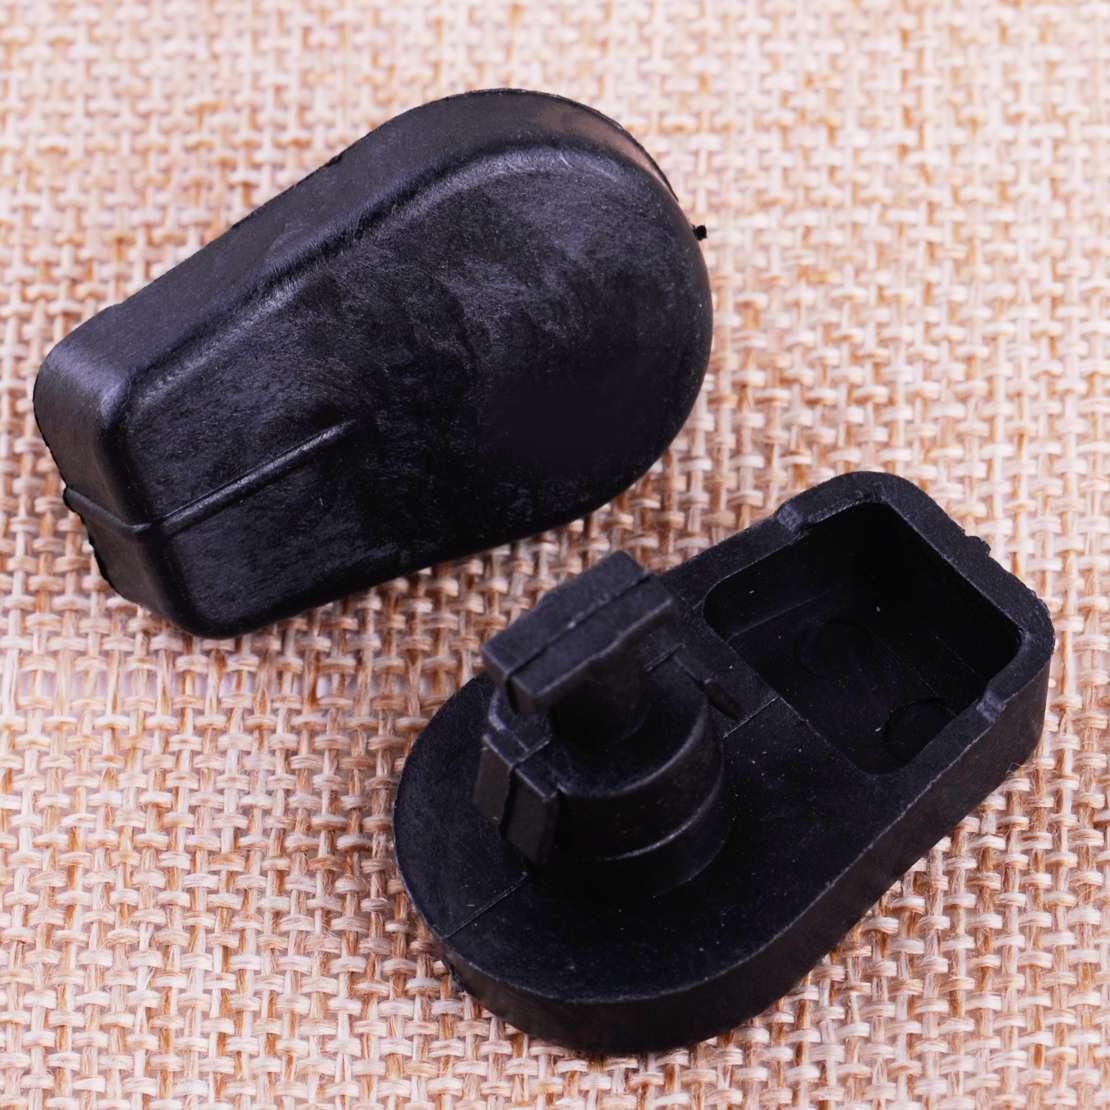 LETAOSK 2pcs Air Filter Cover Twist Lock Fit For Stihl MS210 MS230 MS250 MS290 MS310 MS390